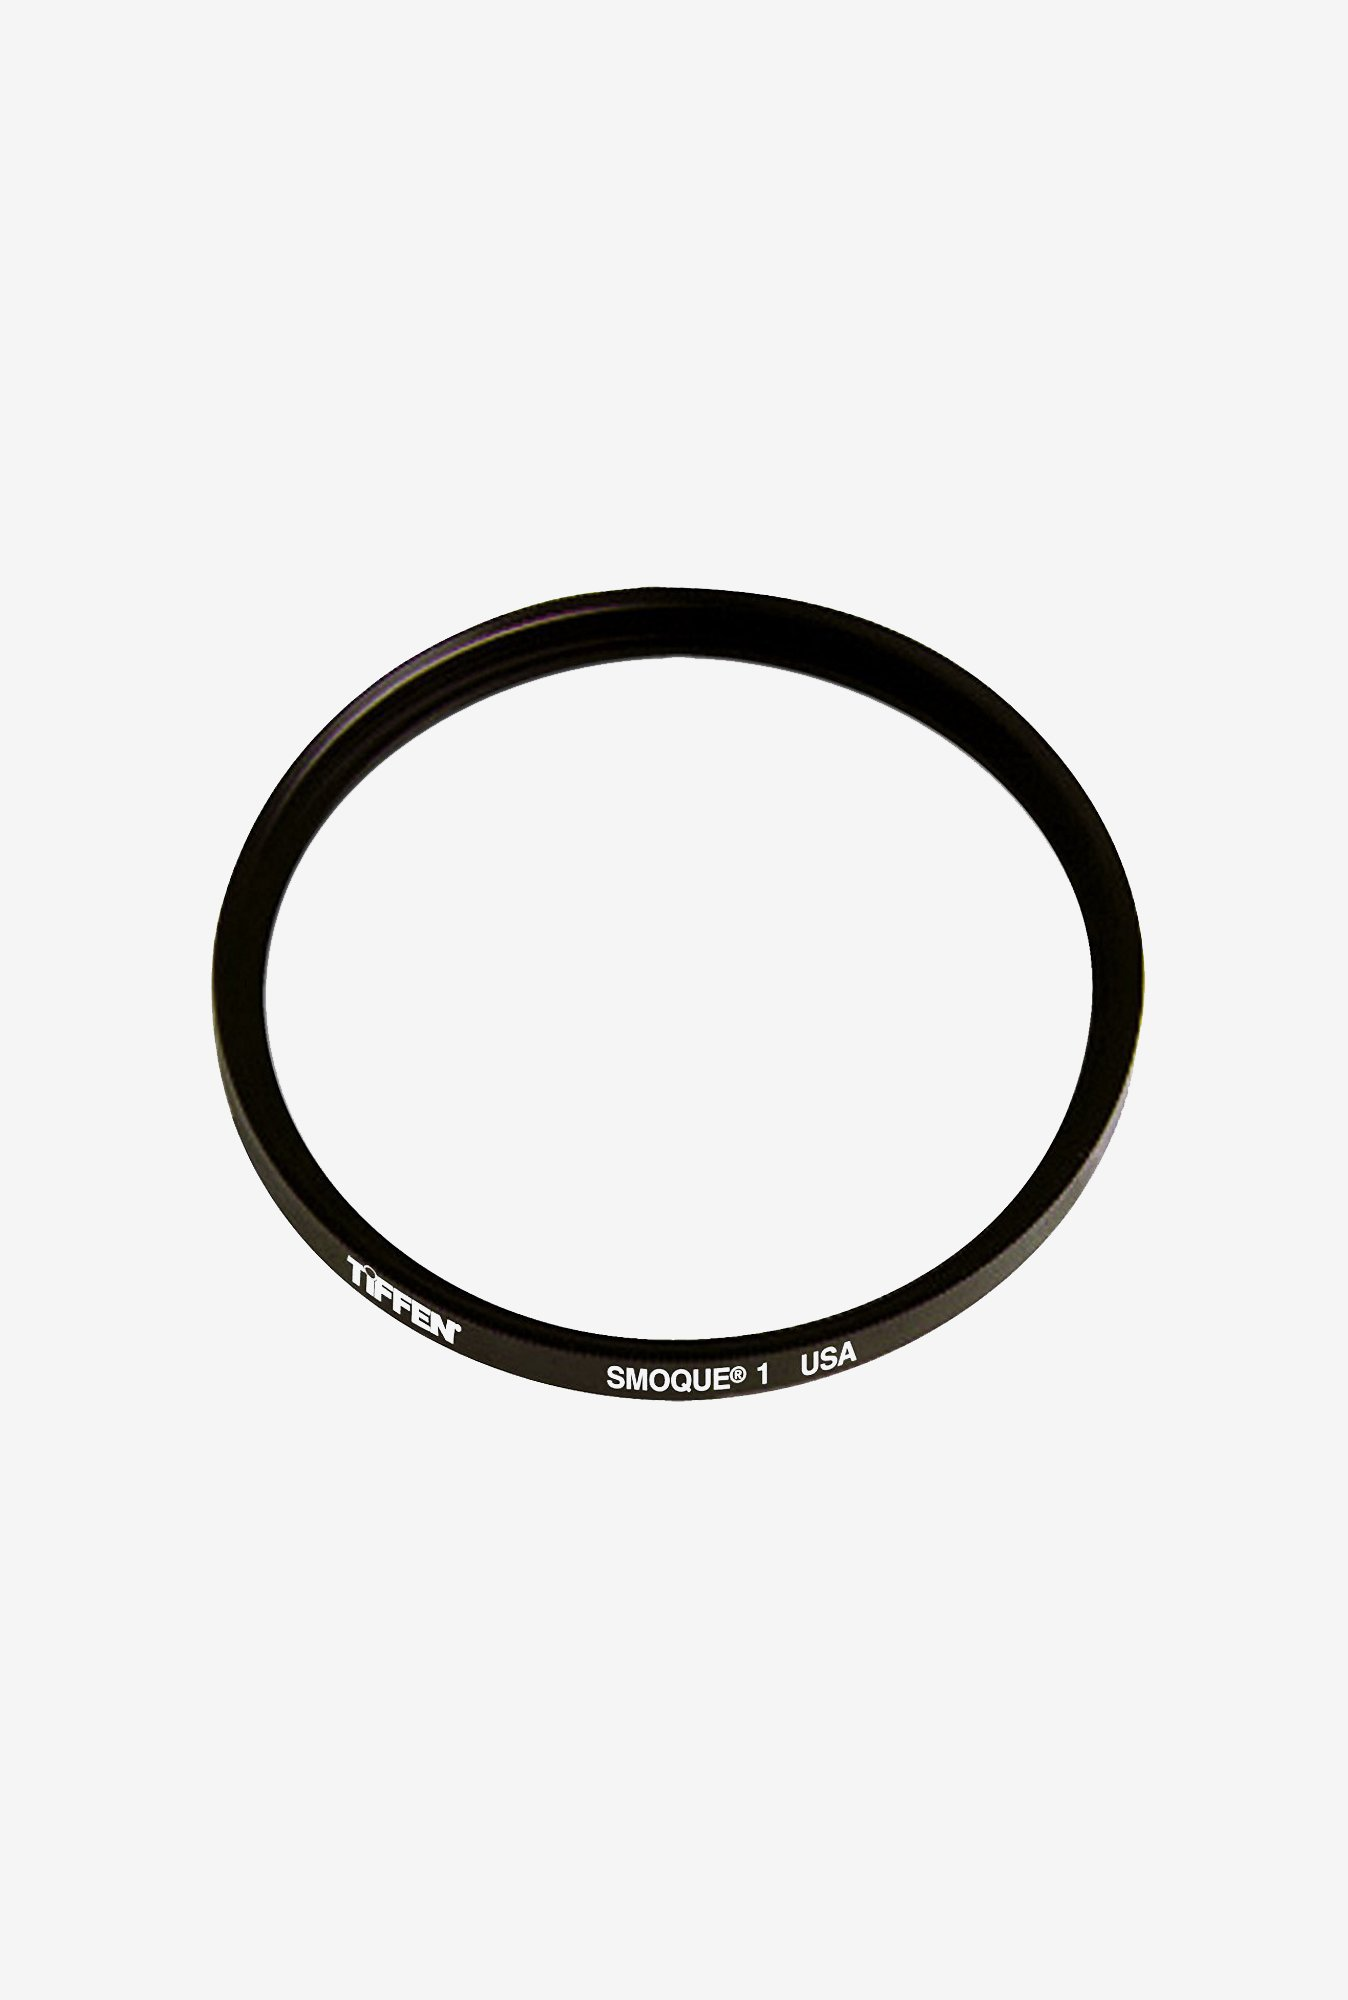 Tiffen 67SMQ1 67mm Smoque 1 Filter (Black)